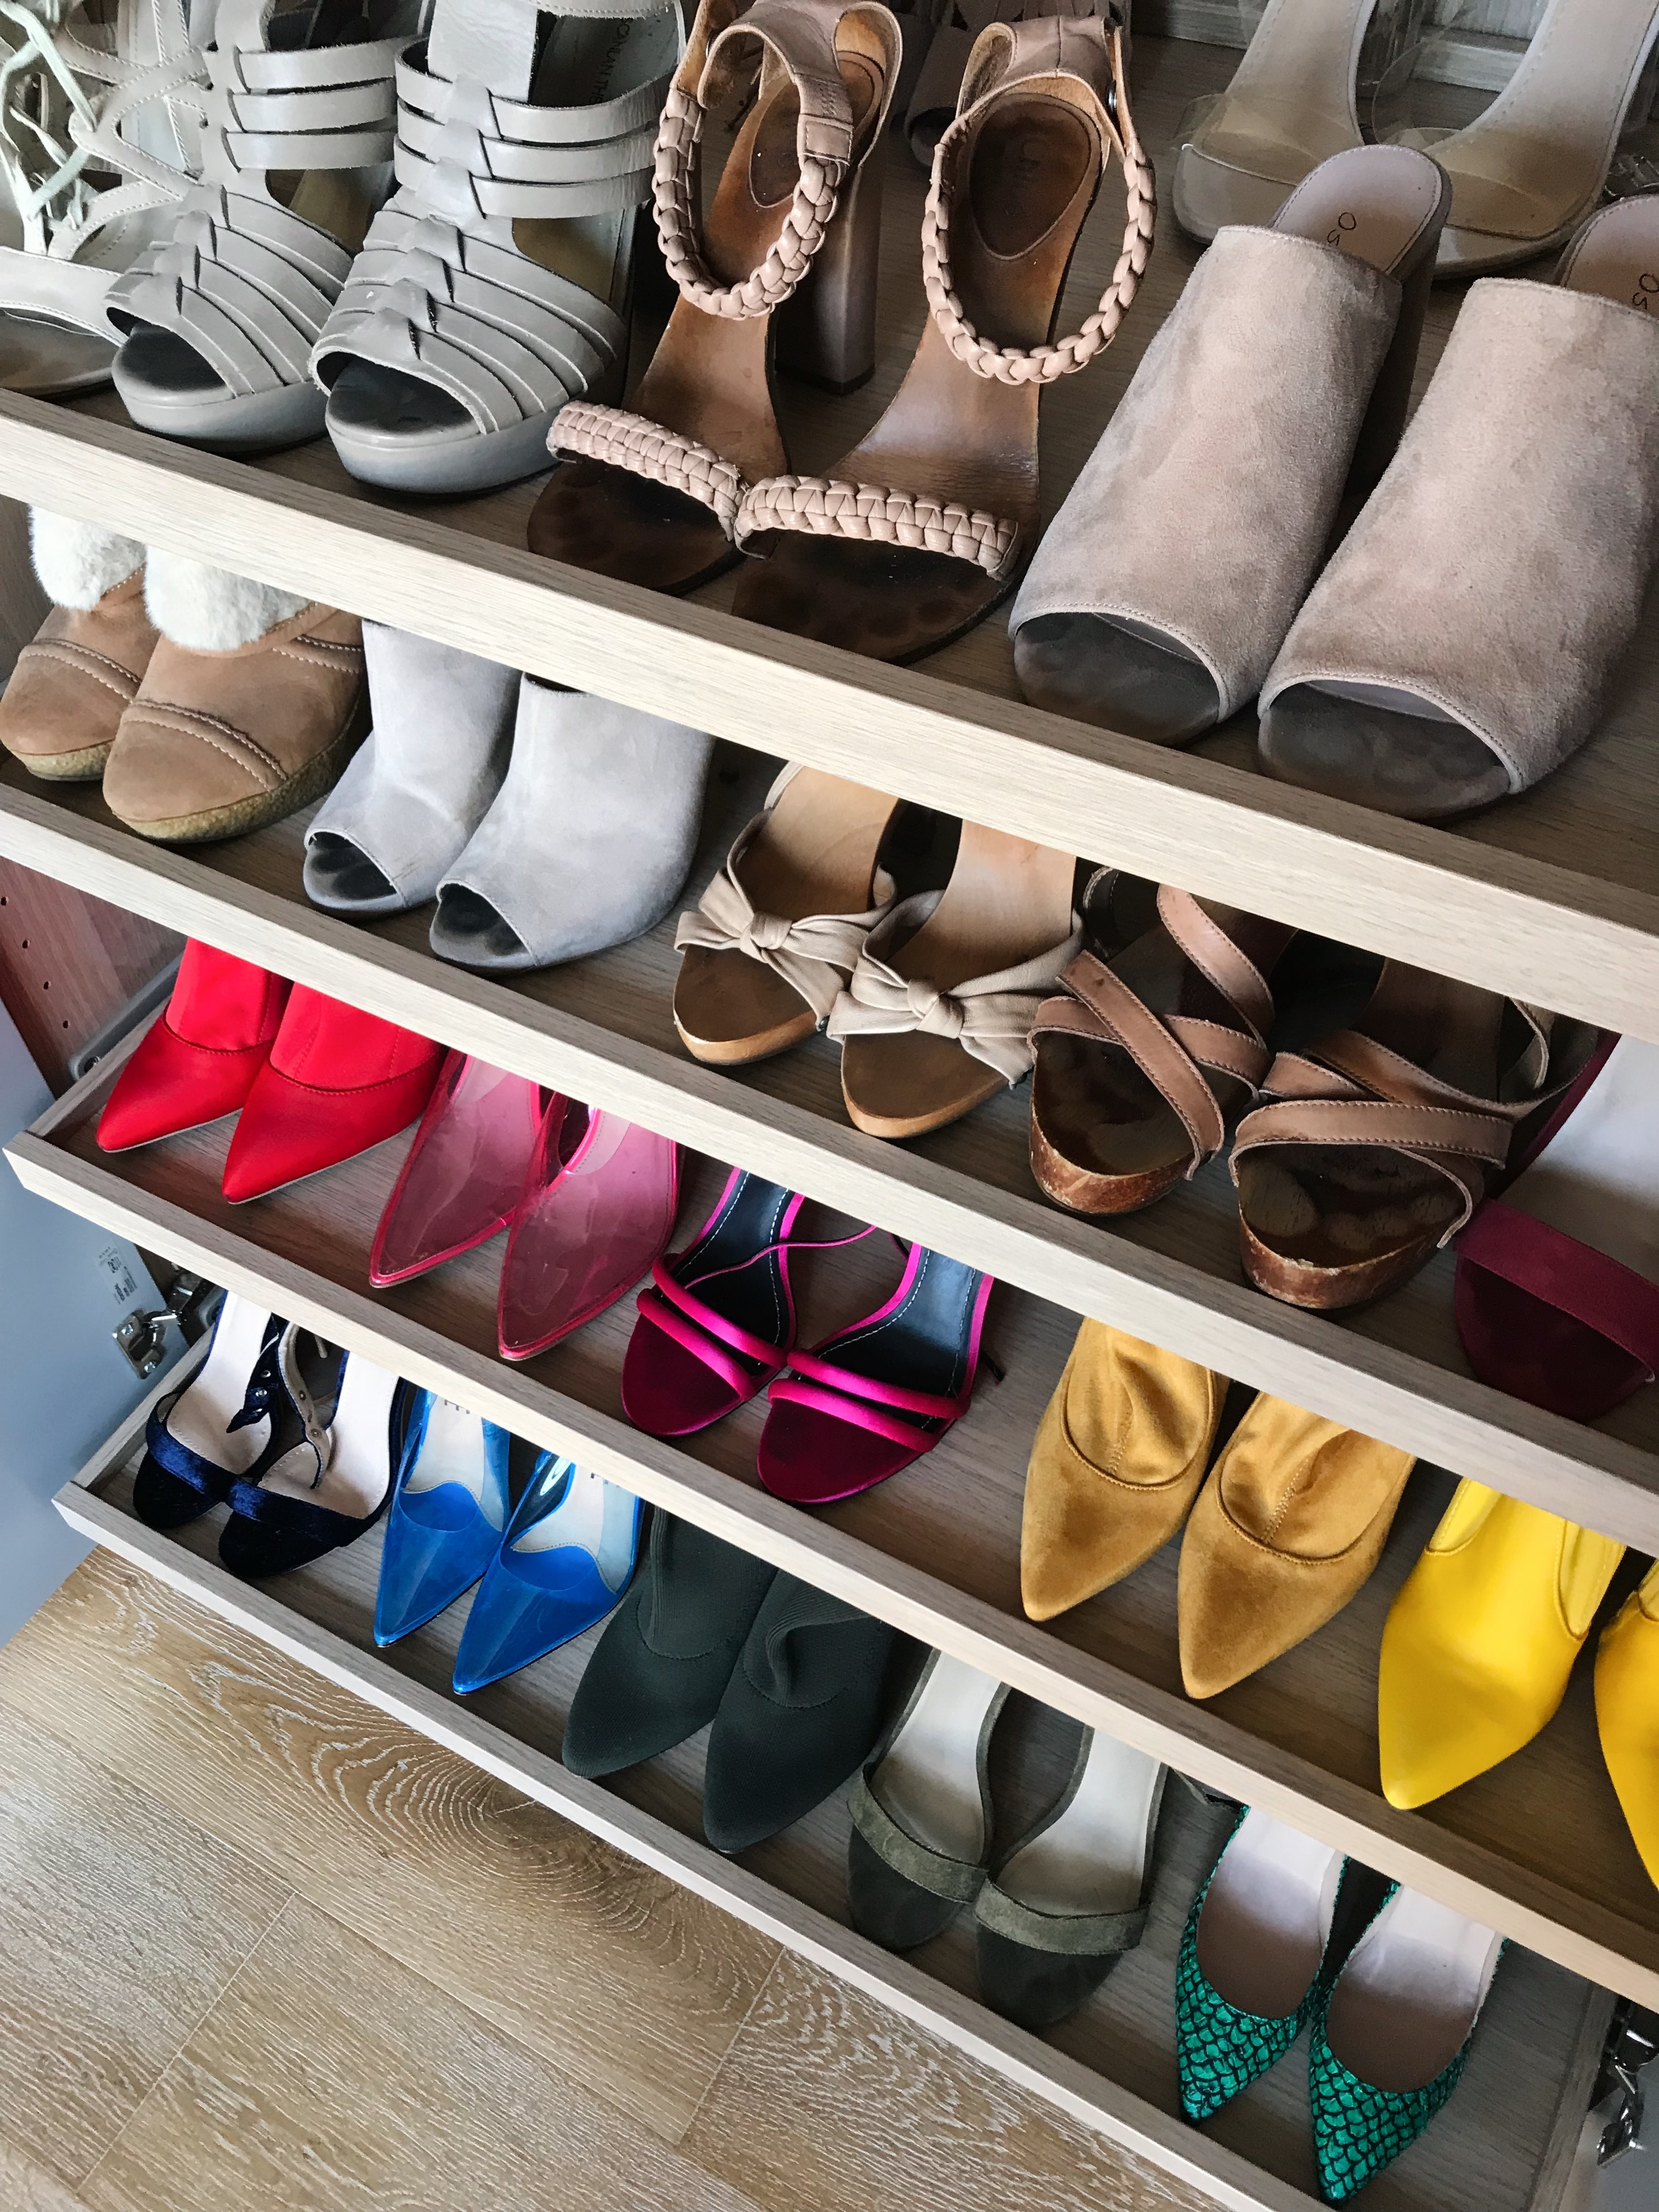 Colourful high heel collection